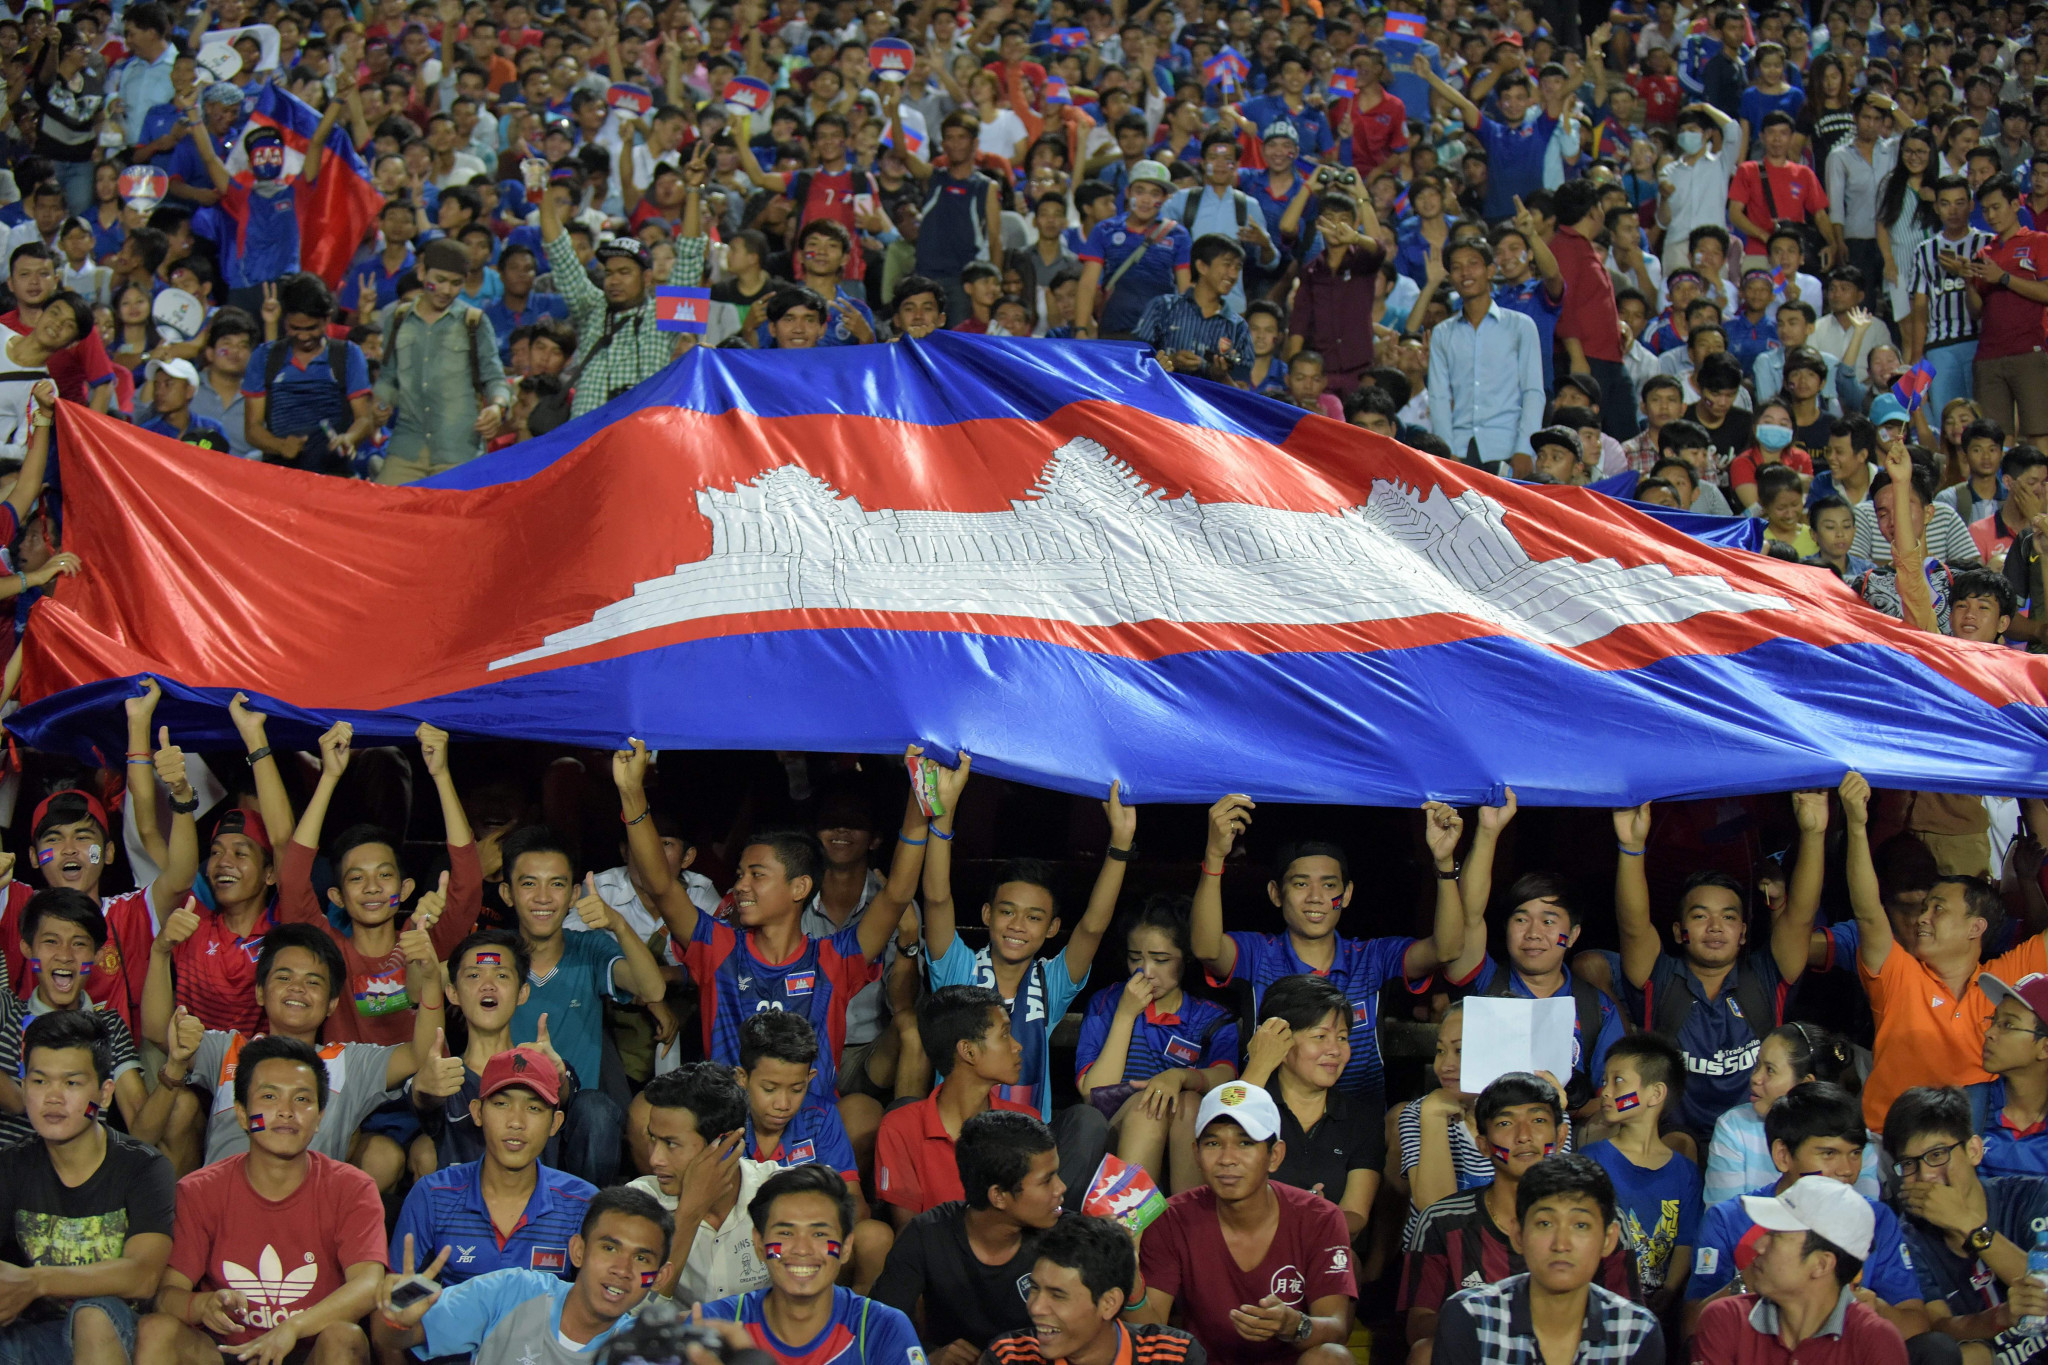 Cambodian Student Sports Federation aiming for youth development pathways